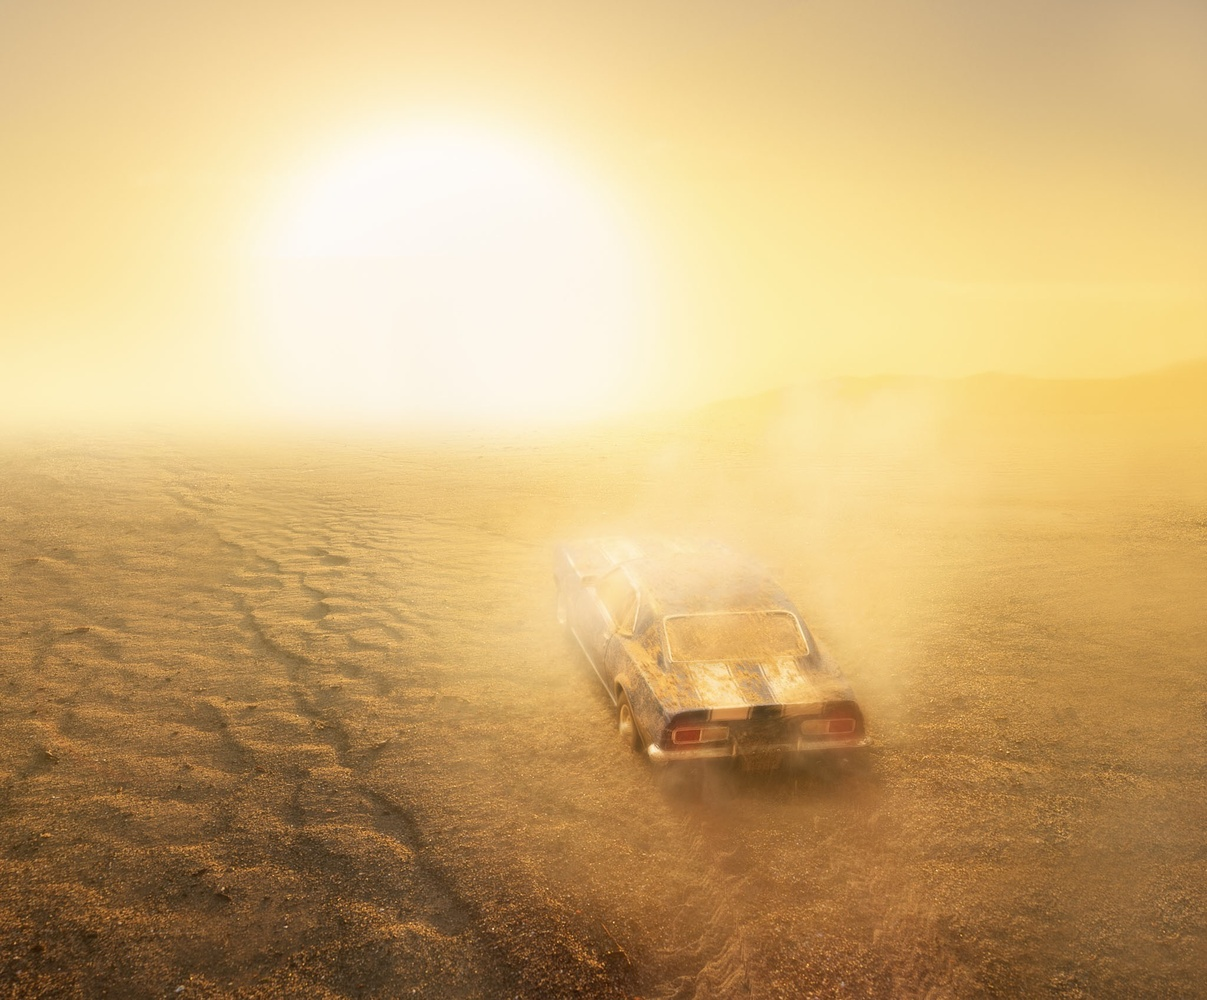 Sunkissed- Desert Camaro - Scale Model by Chase Hirt